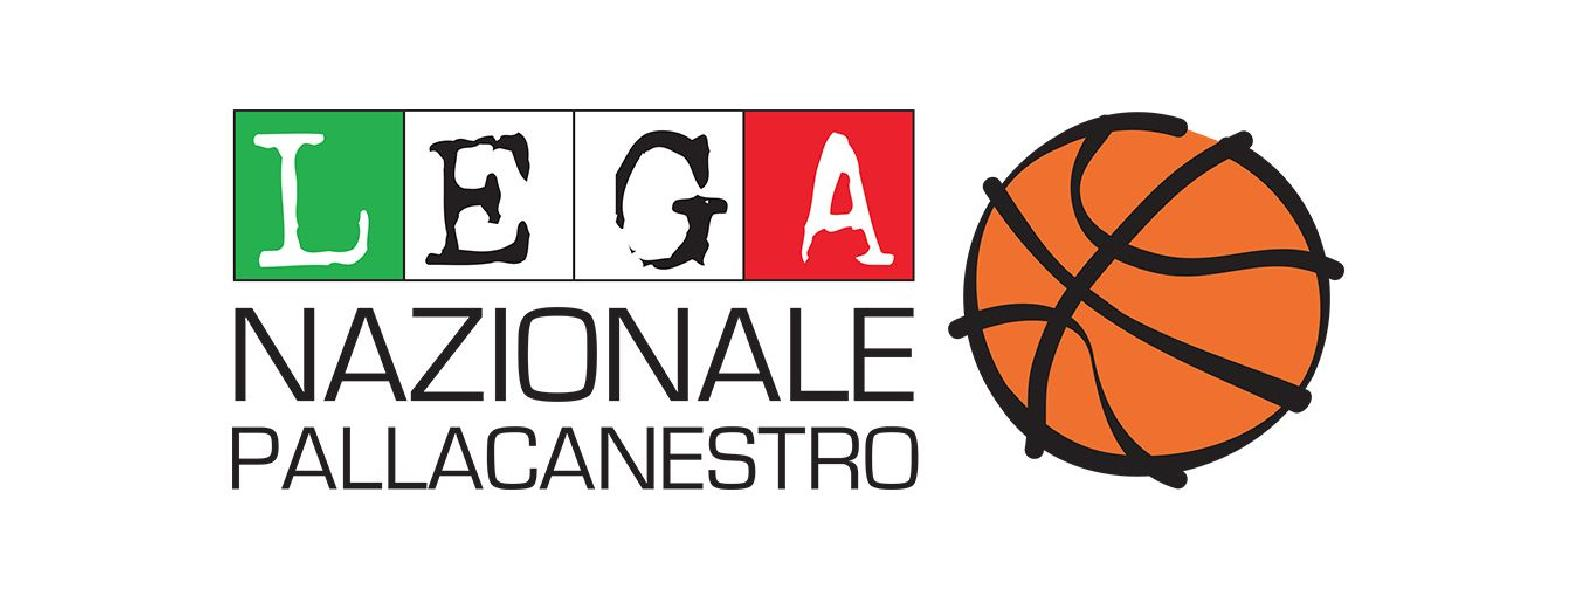 https://www.basketmarche.it/immagini_articoli/02-05-2019/serie-playout-gara-porto-sant-elpidio-catanzaro-portano-600.jpg